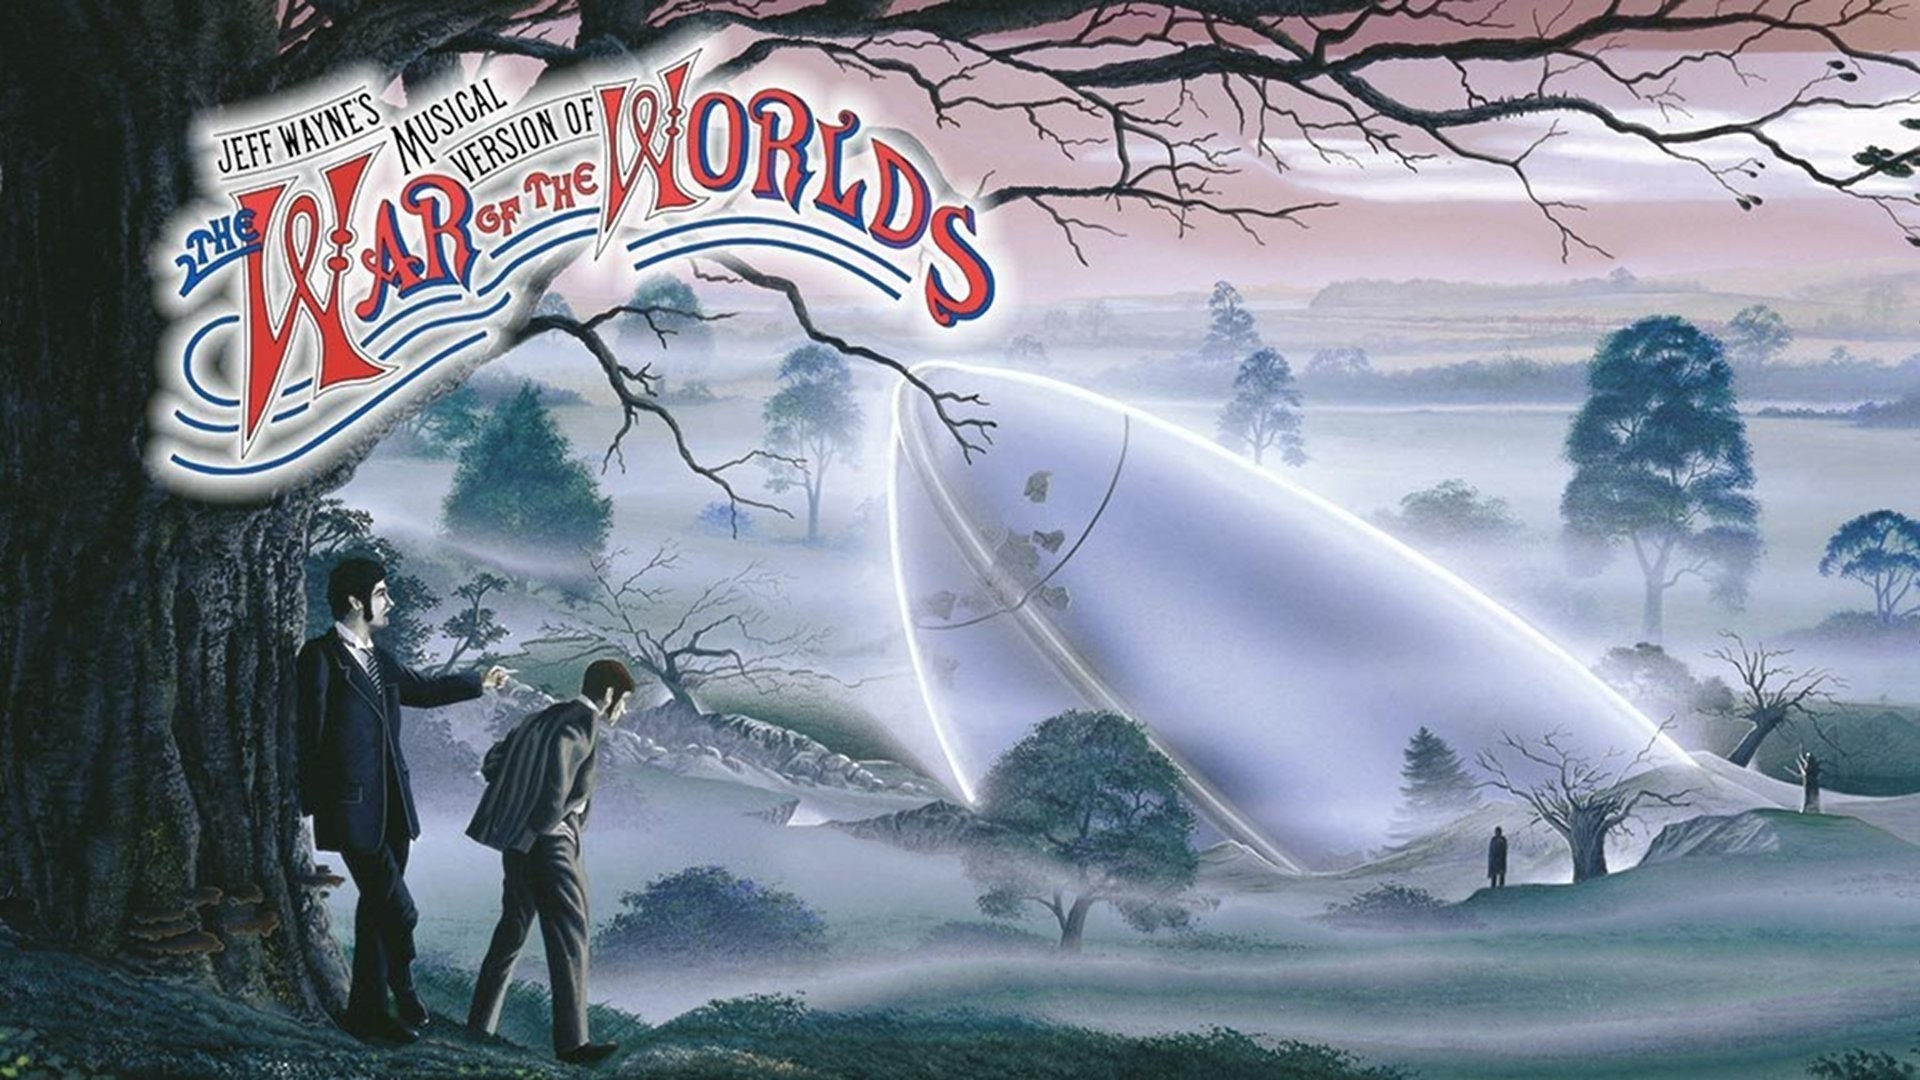 Jeff Wayne S Musical Version Of The War Of The Worlds Video